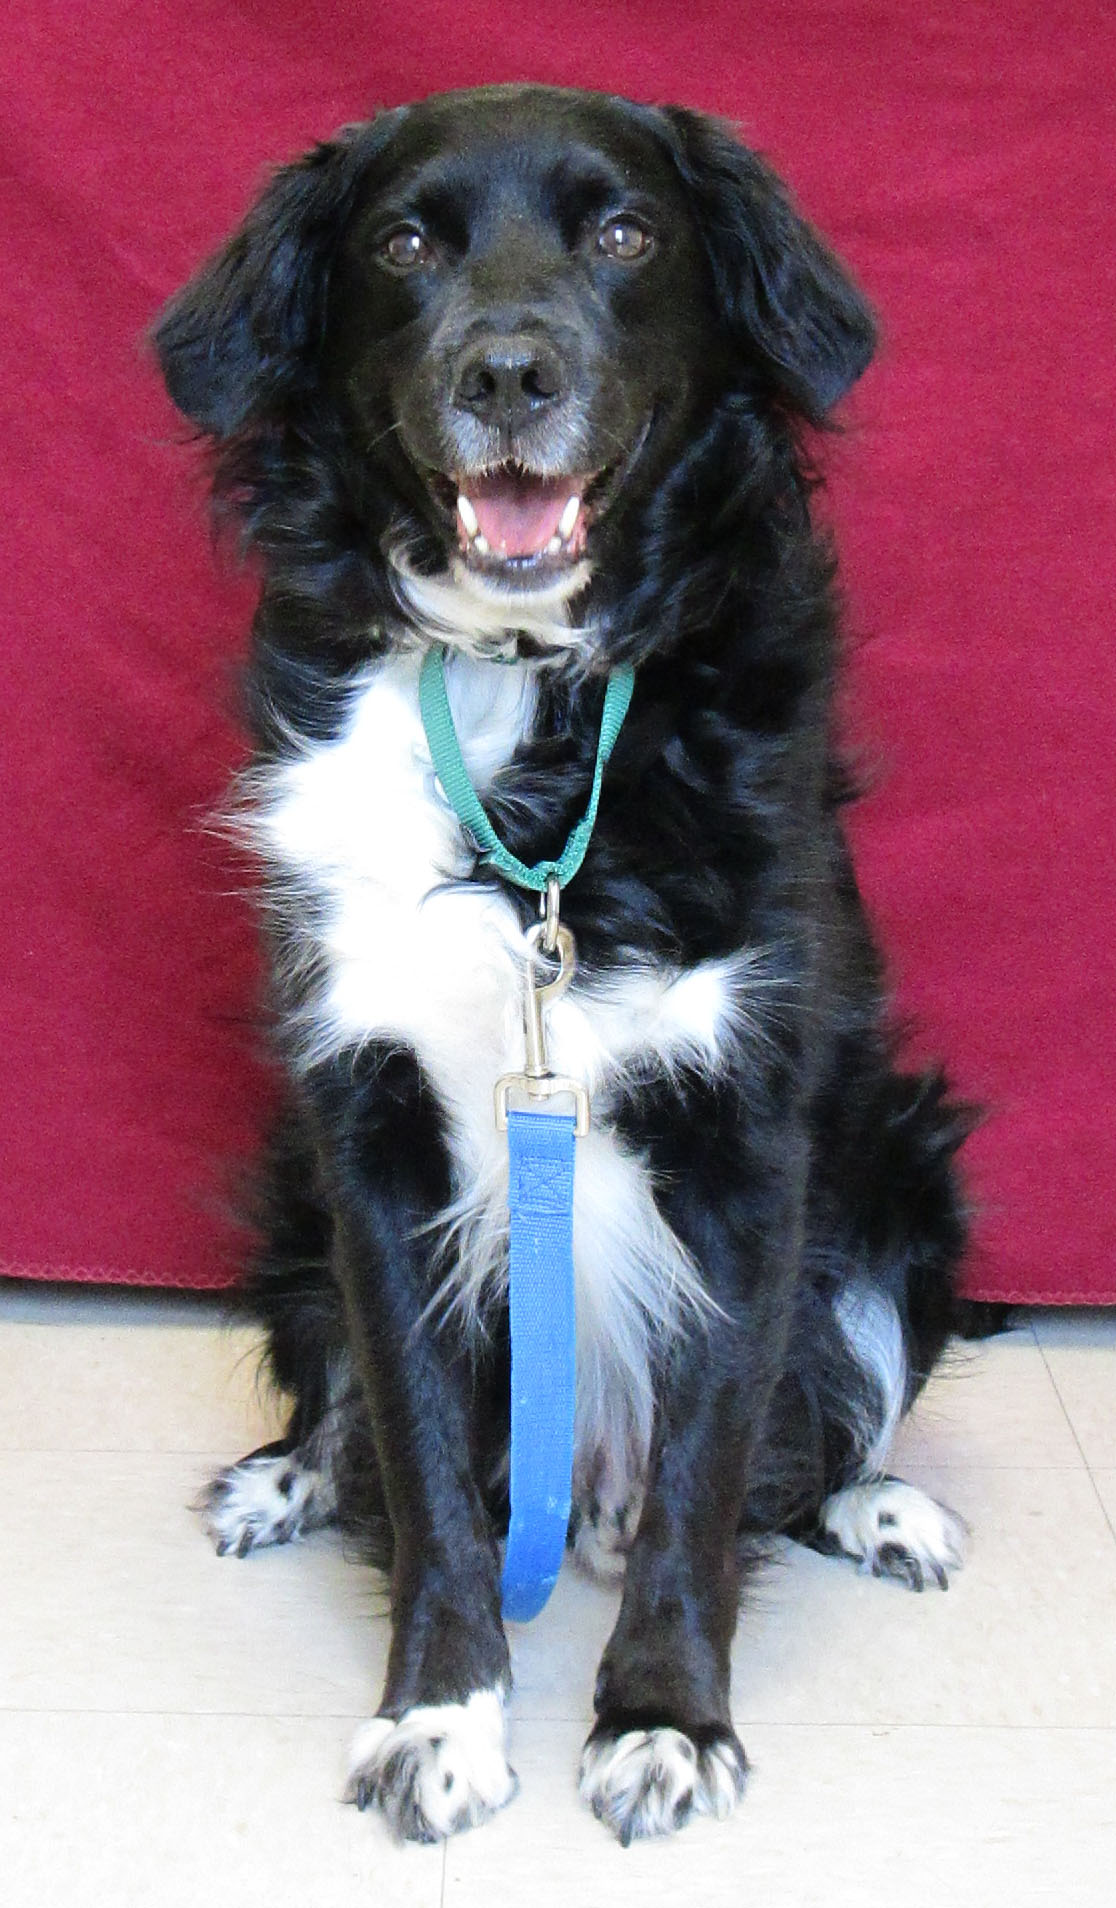 Snickers is a 9-year-old Lab/Springer Mix. He is a very nice boy who needs a patient, dog-savvy home. If his home has another dog he would prefer it to be a calmer, quieter dog who is less bold. What he would really love is to be your one and only! If the home has children we are requiring the children to be teens or older.